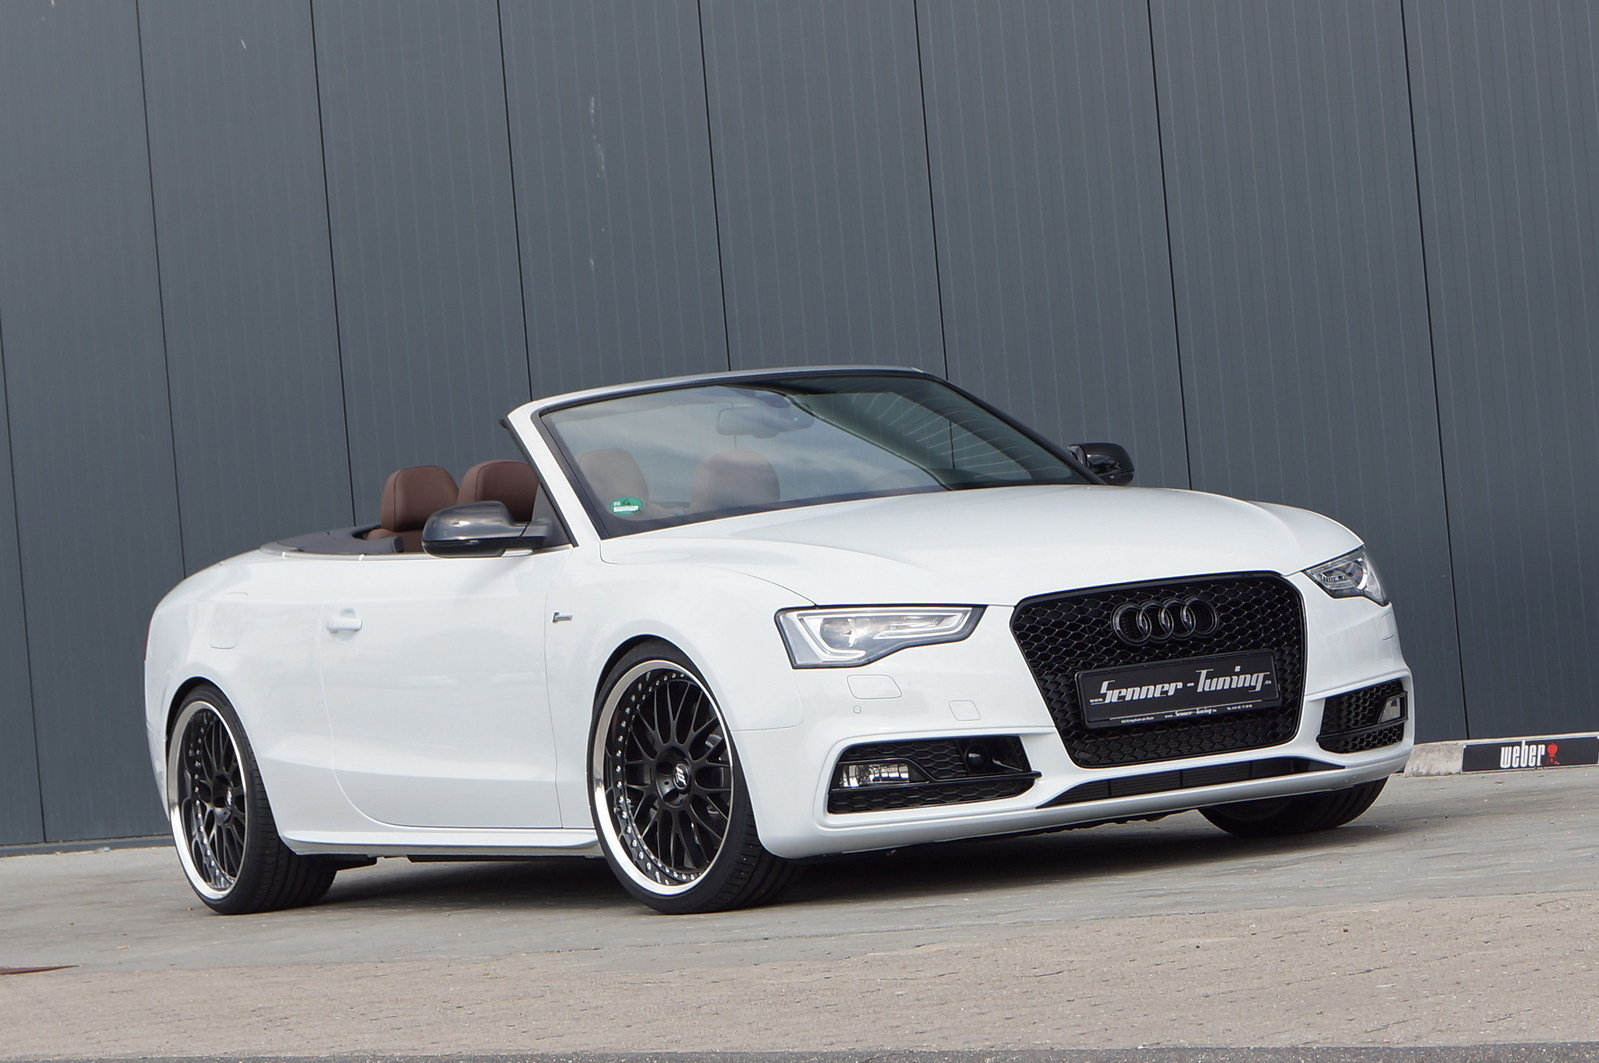 2013 senner tuning audi s5 cabriolet supercharger dark cars wallpapers. Black Bedroom Furniture Sets. Home Design Ideas